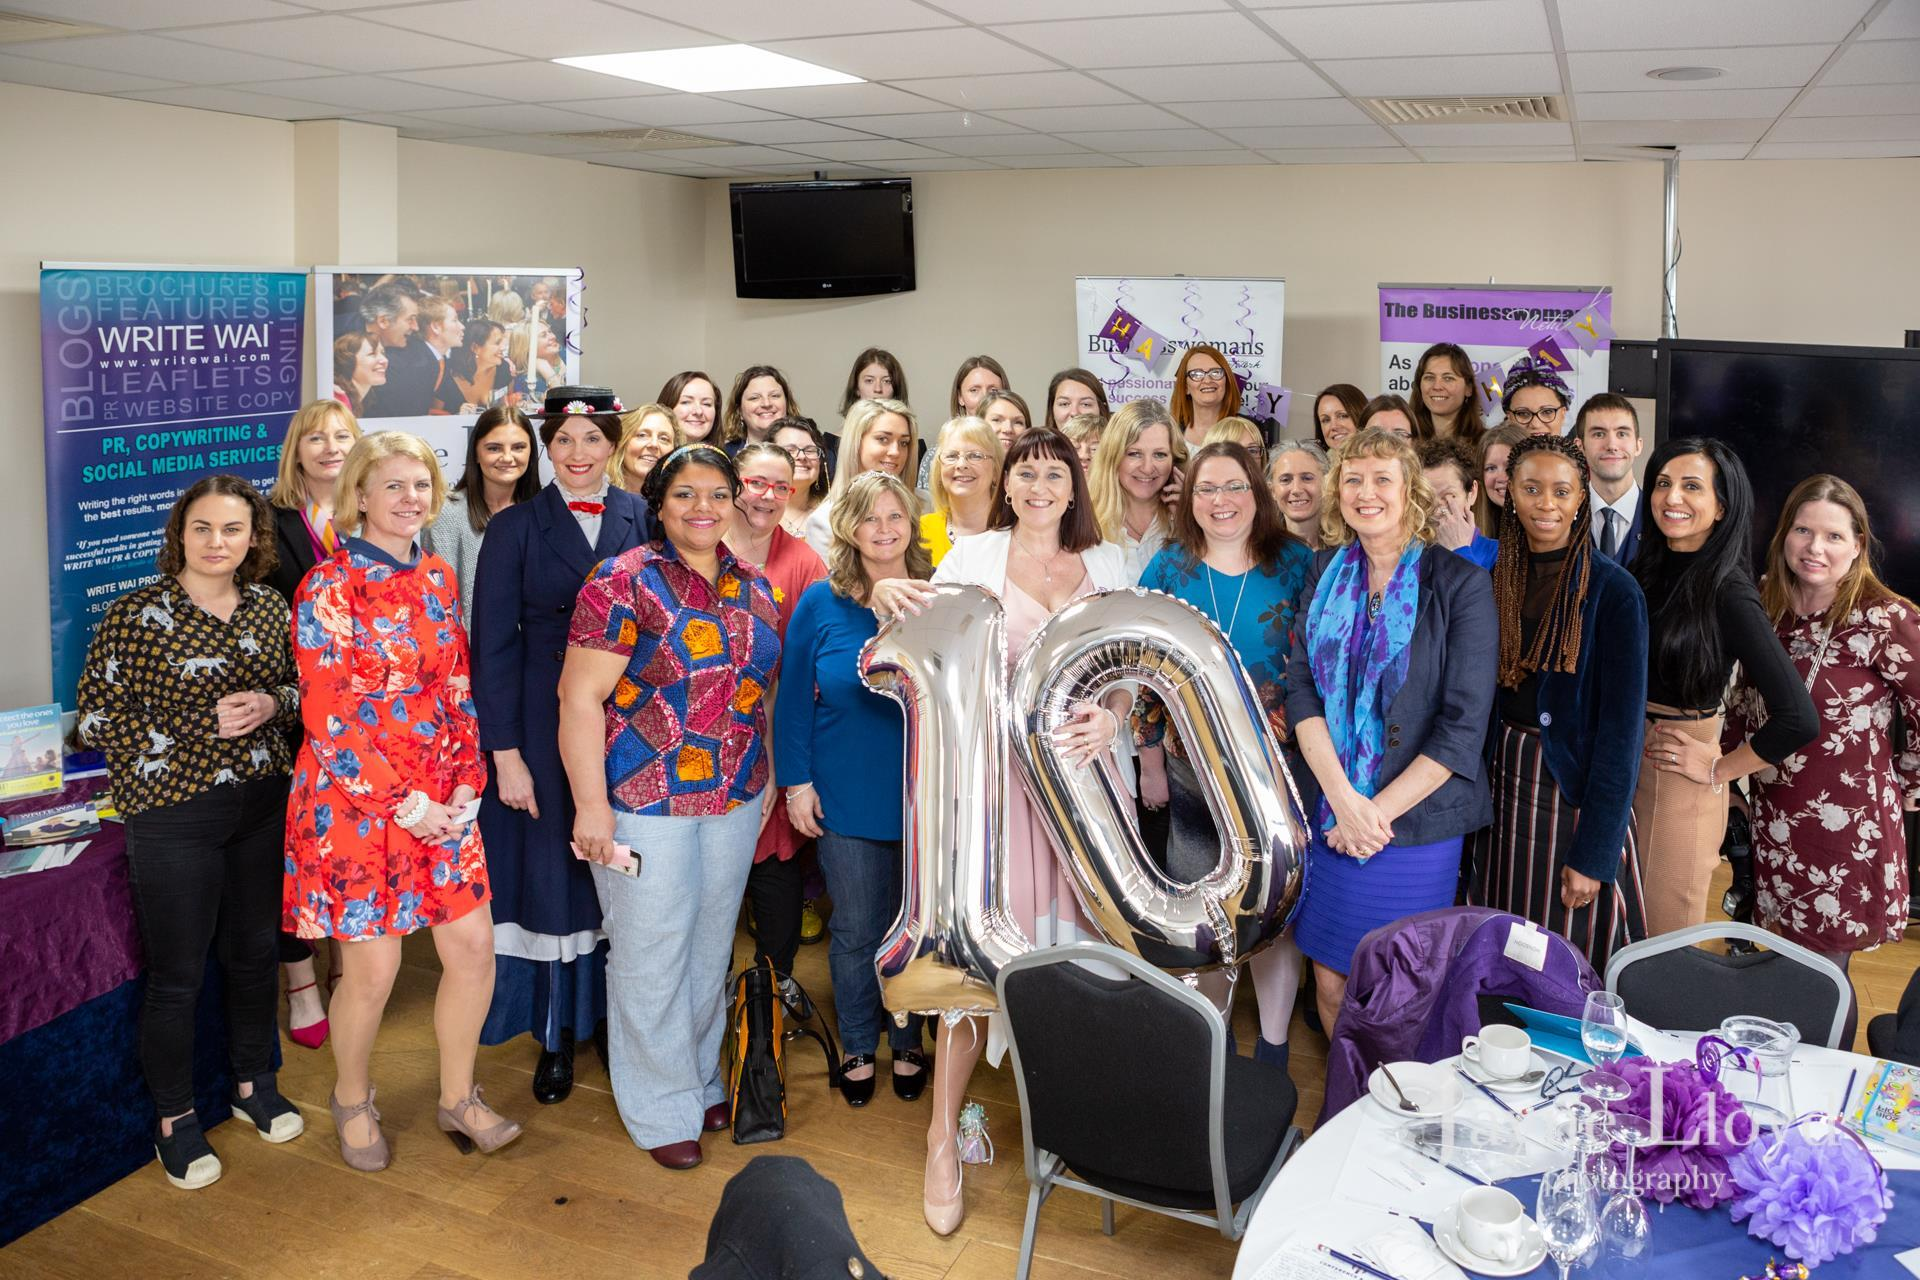 10 years networking for women in business